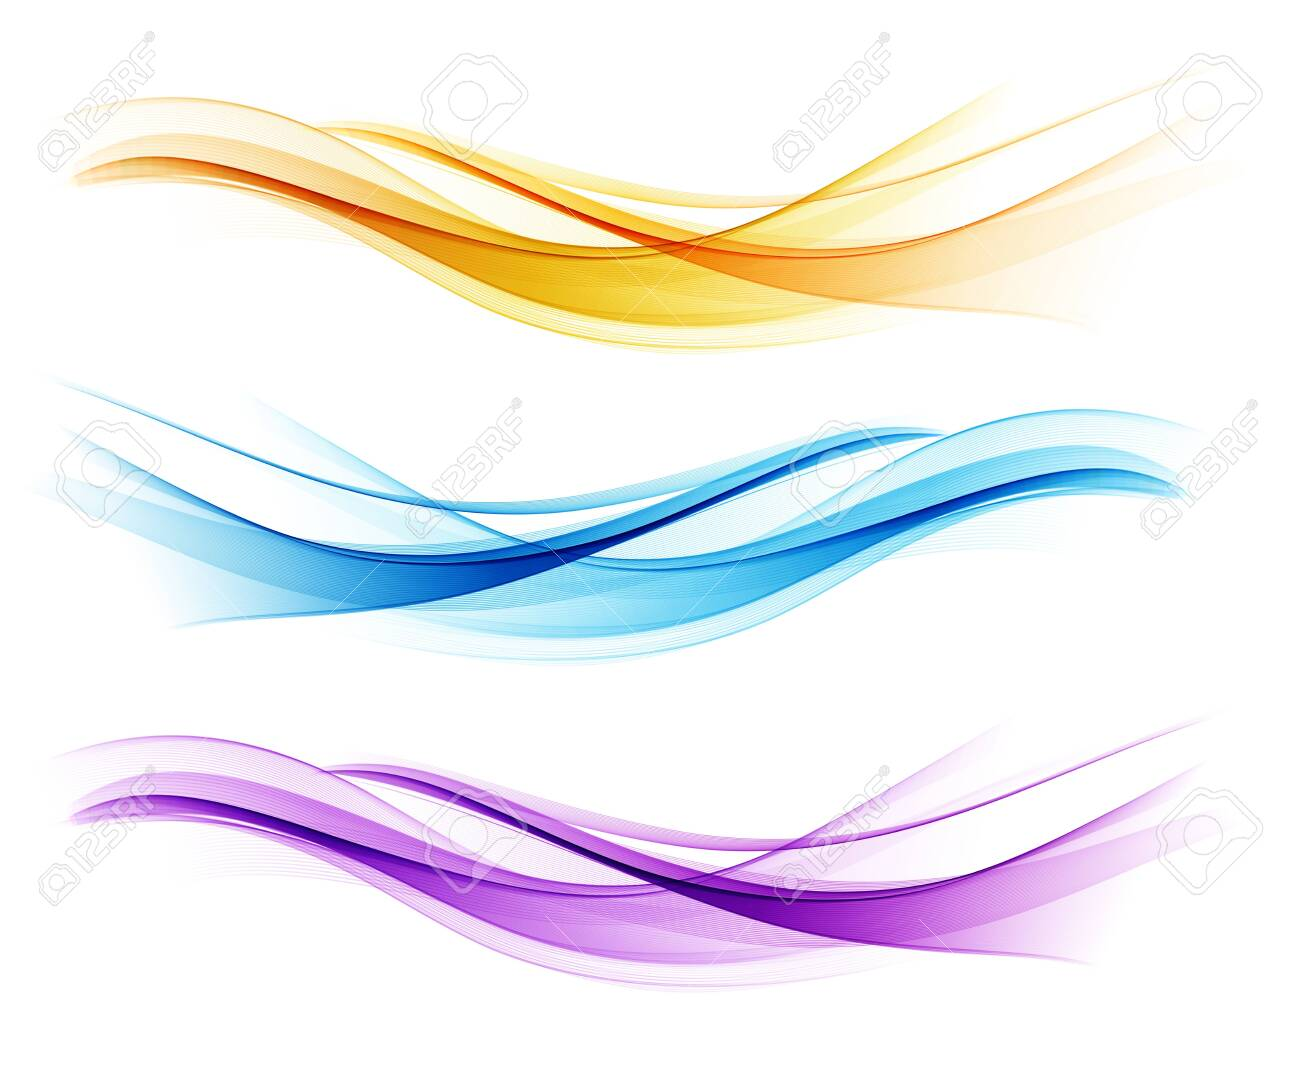 Set of color abstract wave design element - 148965844